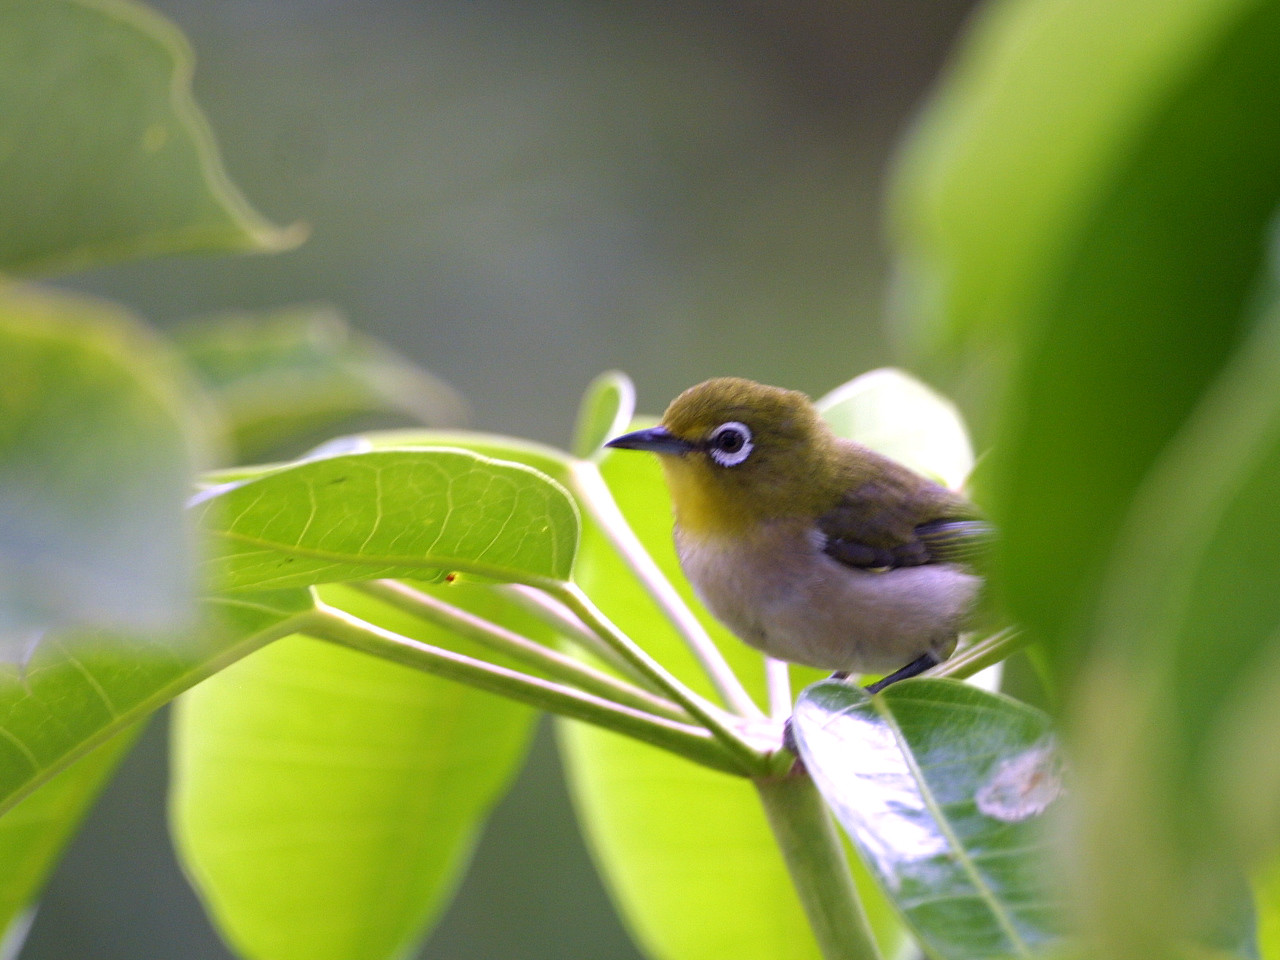 """Japanese white-eye (Zosterops japonicus) This photo is by Dr. K.W. Bridges (University of Hawaii) (kim@hawaii.edu).  The photograph was copied from the website """"Common Campus Birds"""" (of the University of Hawaii at Manoa) (http://www.botany.hawaii.edu/biology101/birds/campus_birds.htm).  (Dr. Bridges has kindly placed these photographs in the public domain: """"These photographs are not copyrighted and may be used without further permission."""")"""